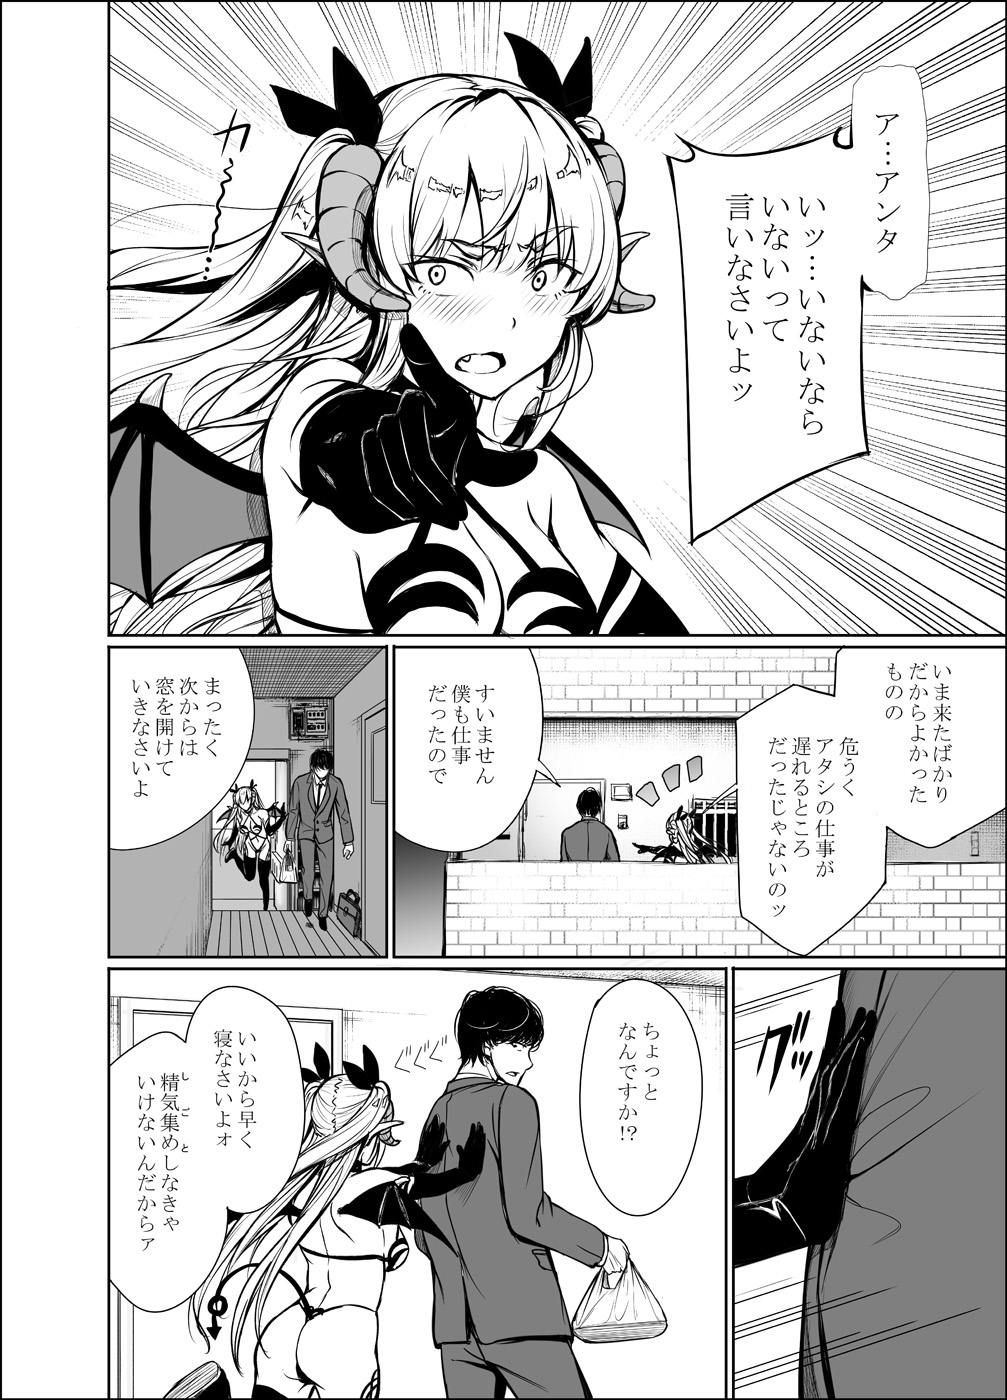 1boy 1girl bag blush boots briefcase comic demon_girl demon_horns demon_tail demon_wings emphasis_lines entrance eyebrows_visible_through_hair fang formal gentsuki greyscale hallway highres holding holding_bag horns kuroki_tsutomu lily_(gentsuki) monochrome notice_lines original plastic_bag pointing pointing_at_viewer pointing_finger pointy_ears revealing_clothes salaryman speech_bubble succubus suit tail thick_eyebrows thigh-highs thigh_boots two_side_up wings